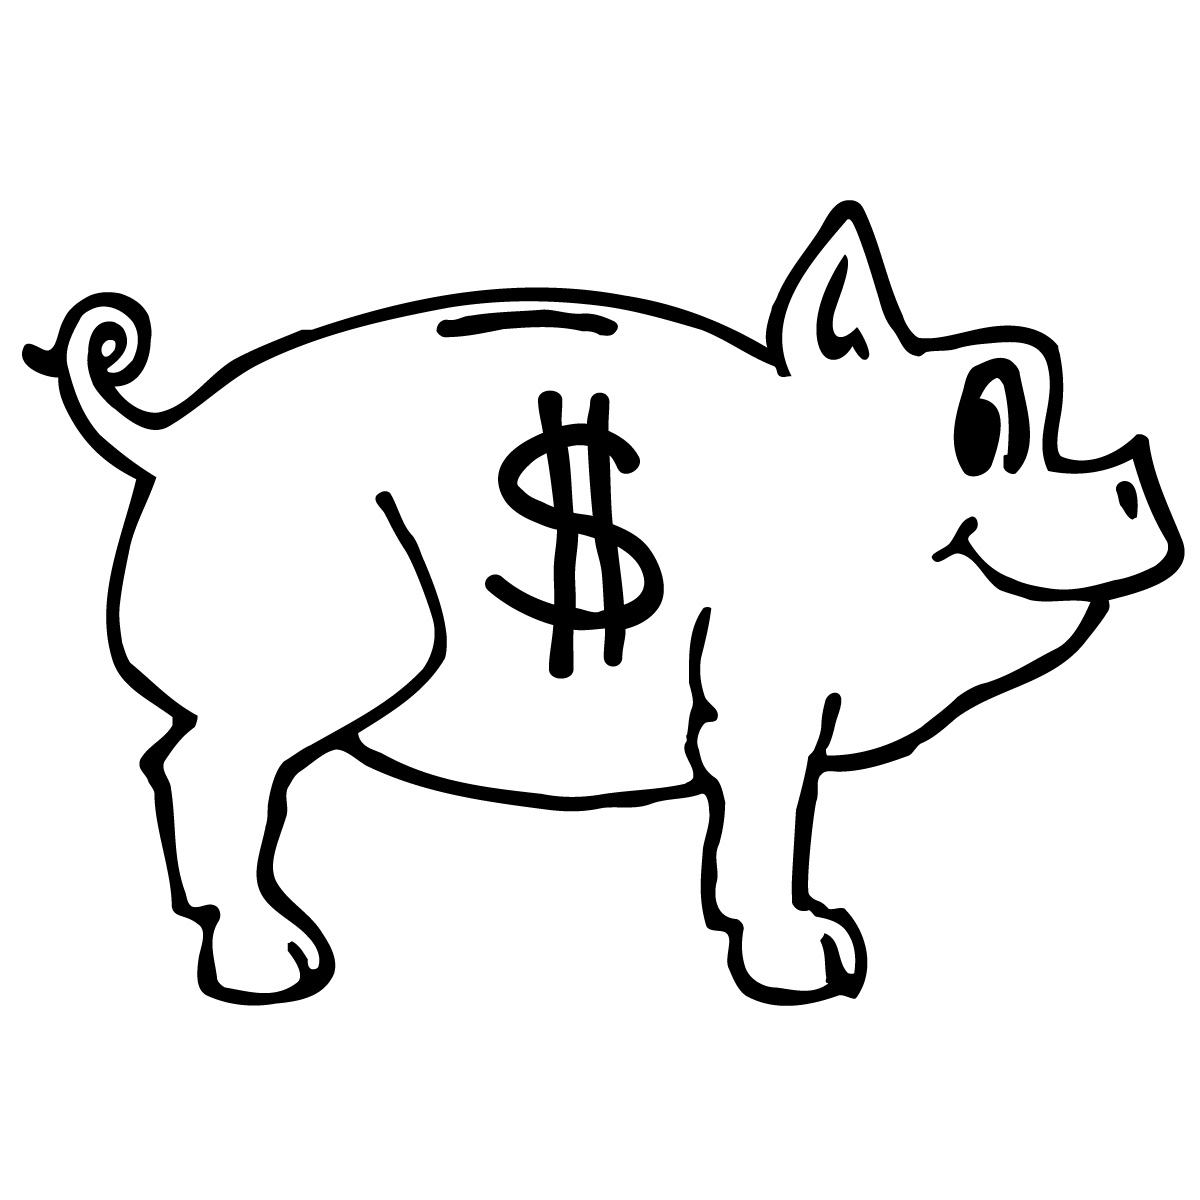 Coin Money Clipart Black And White   Clipart Panda   Free Clipart